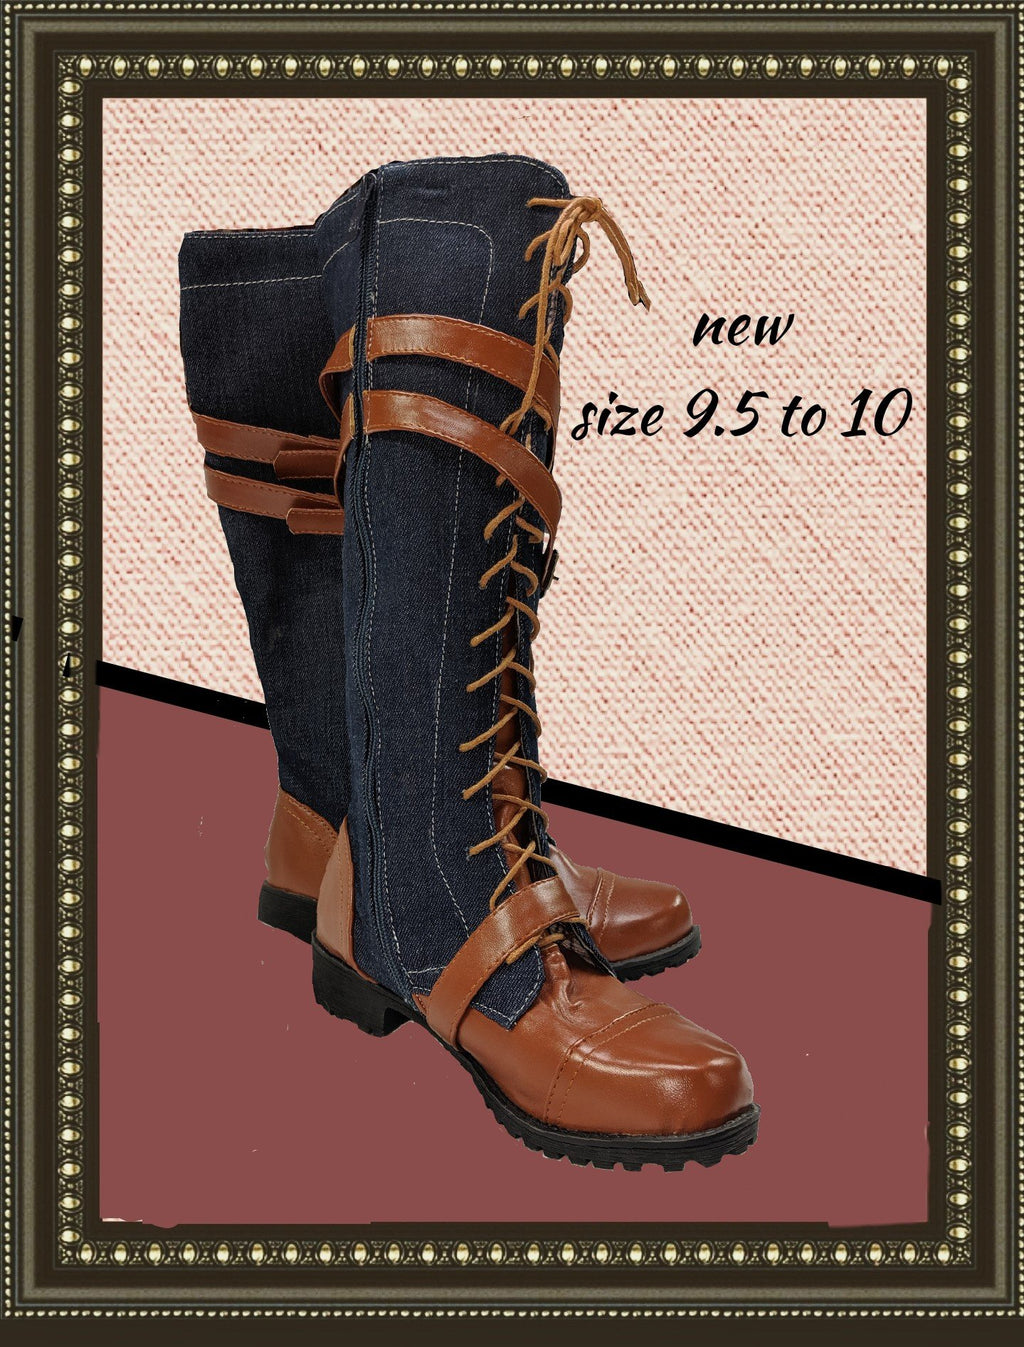 unbranded adorable denim boots - size 9.5 to 10 (b)